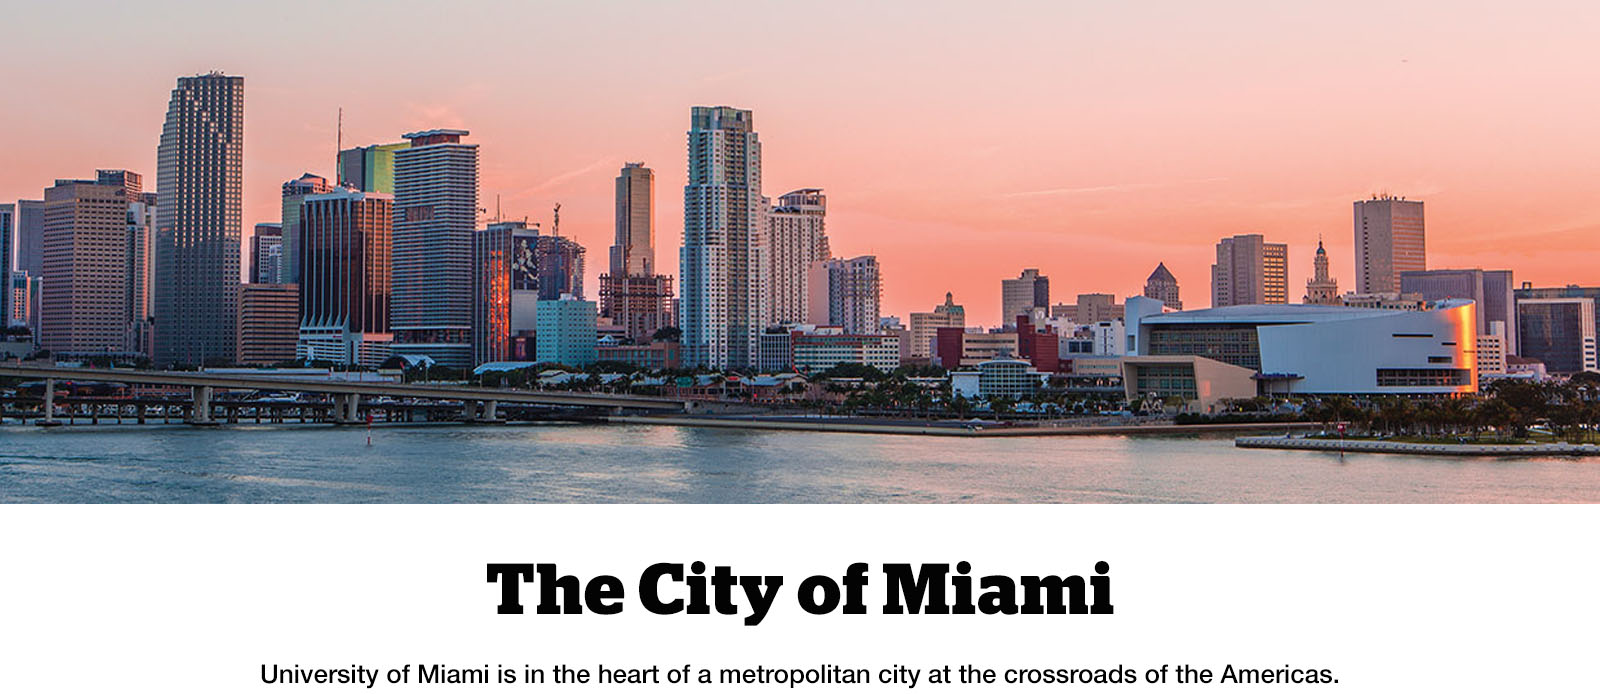 University of Miami is in the heart of a metropolitan city at the crossroads of the Americas.